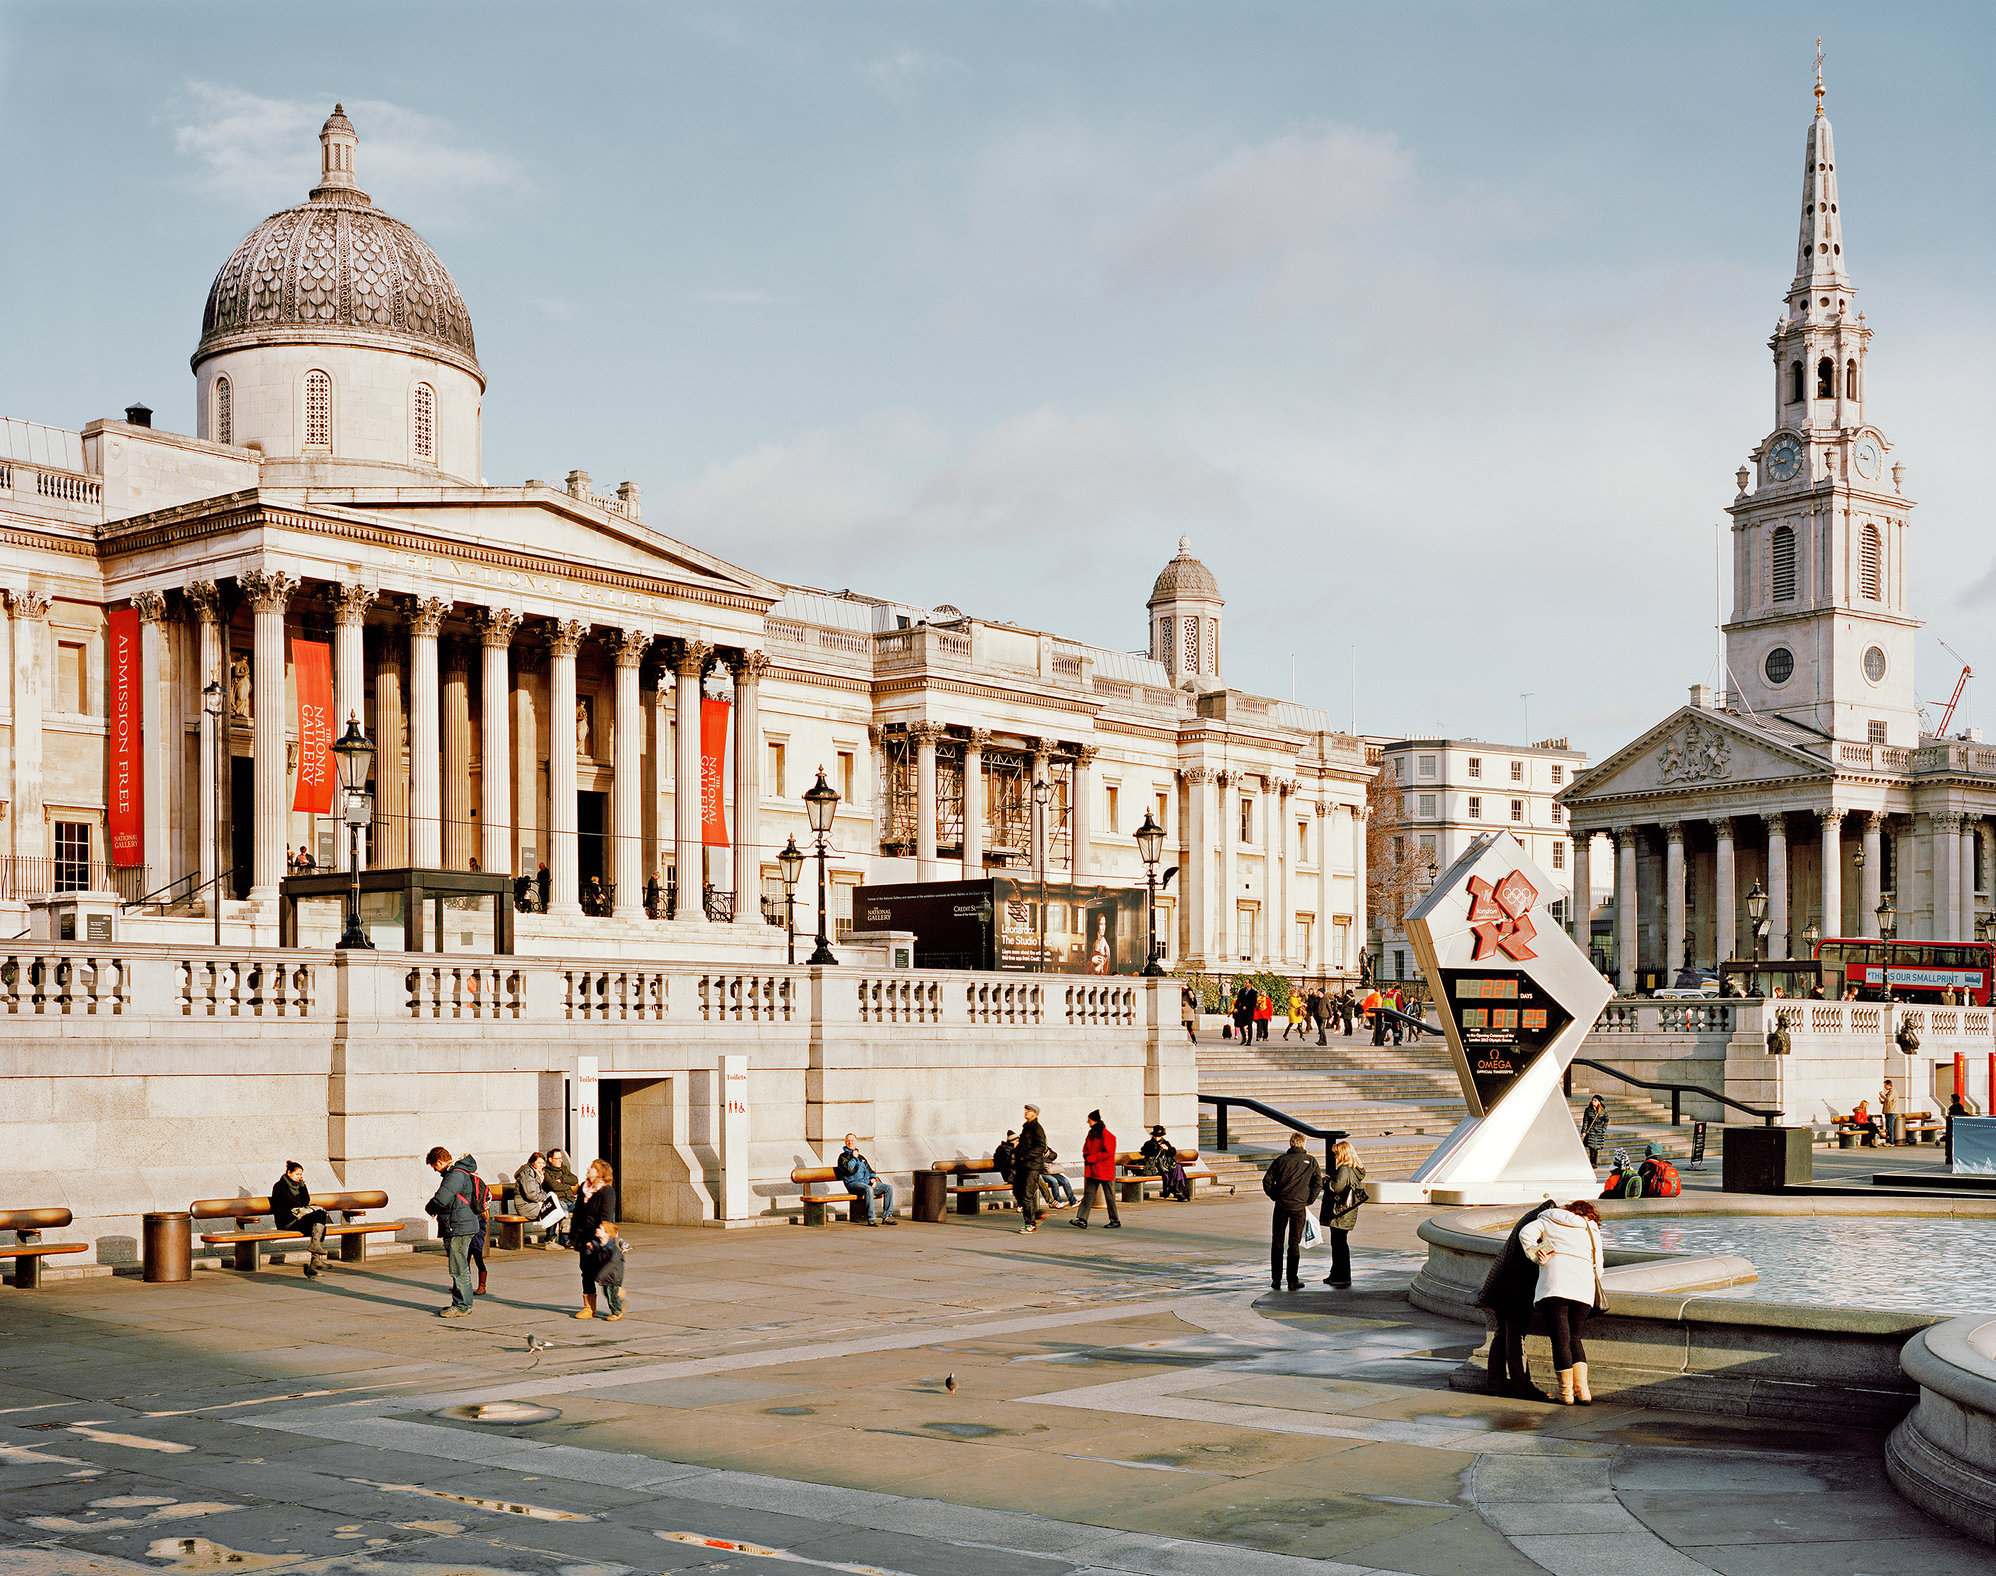 Trafalgar Sq, The National Gallery and St Martin-in-the-Fields